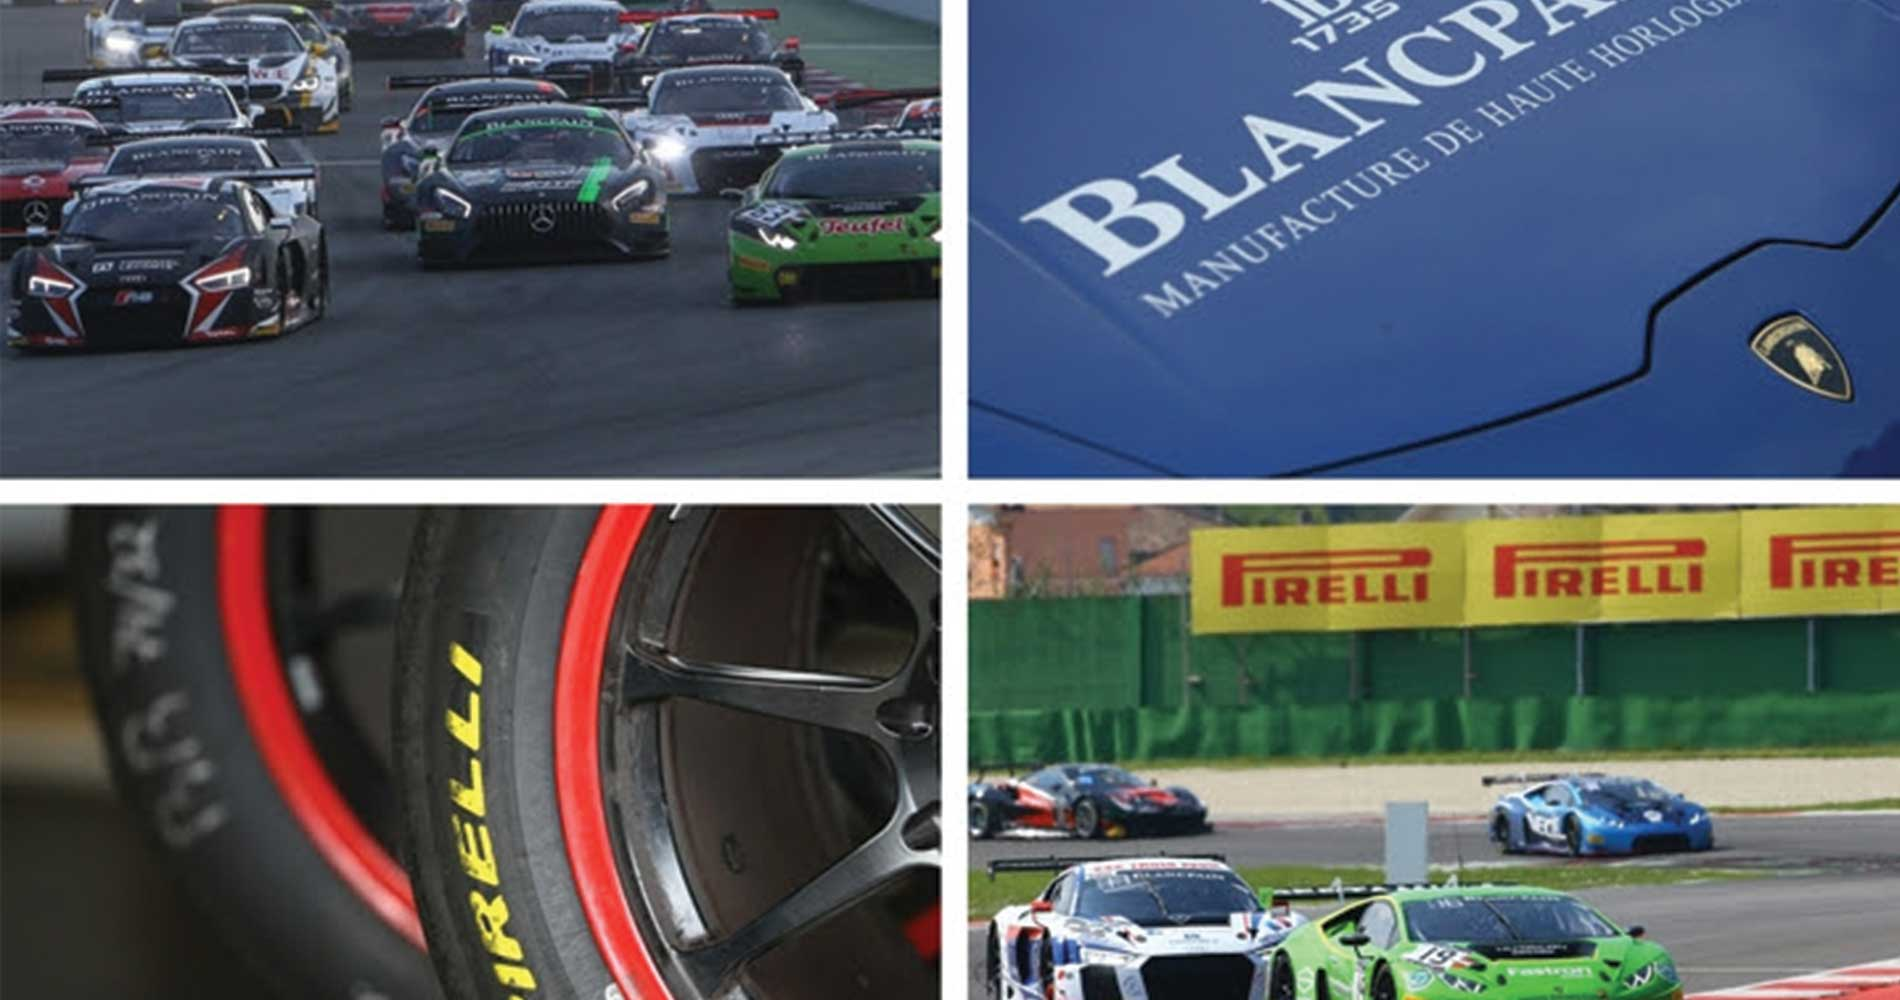 blancpain-gt-series-asia-reveals-inaugural-calendar-and-championship-details-motorsportdays-track-day-1